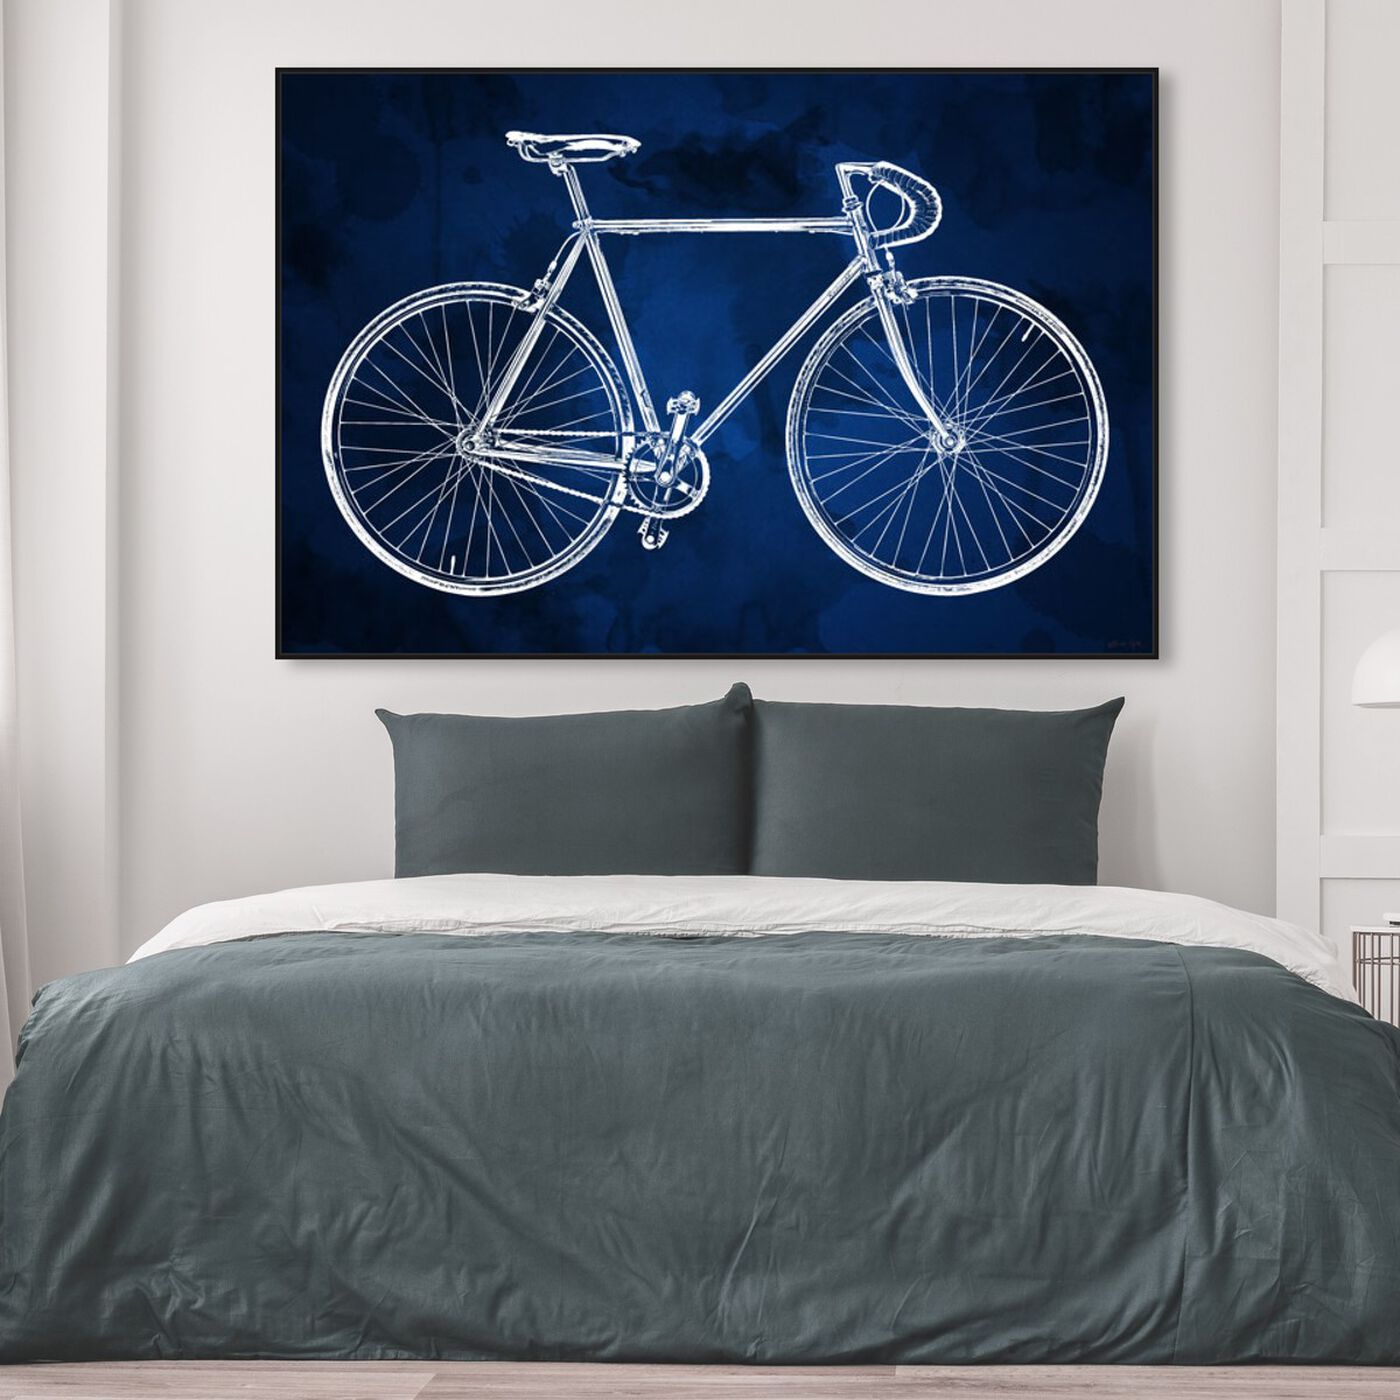 Hanging view of Fixie featuring transportation and bicycles art.